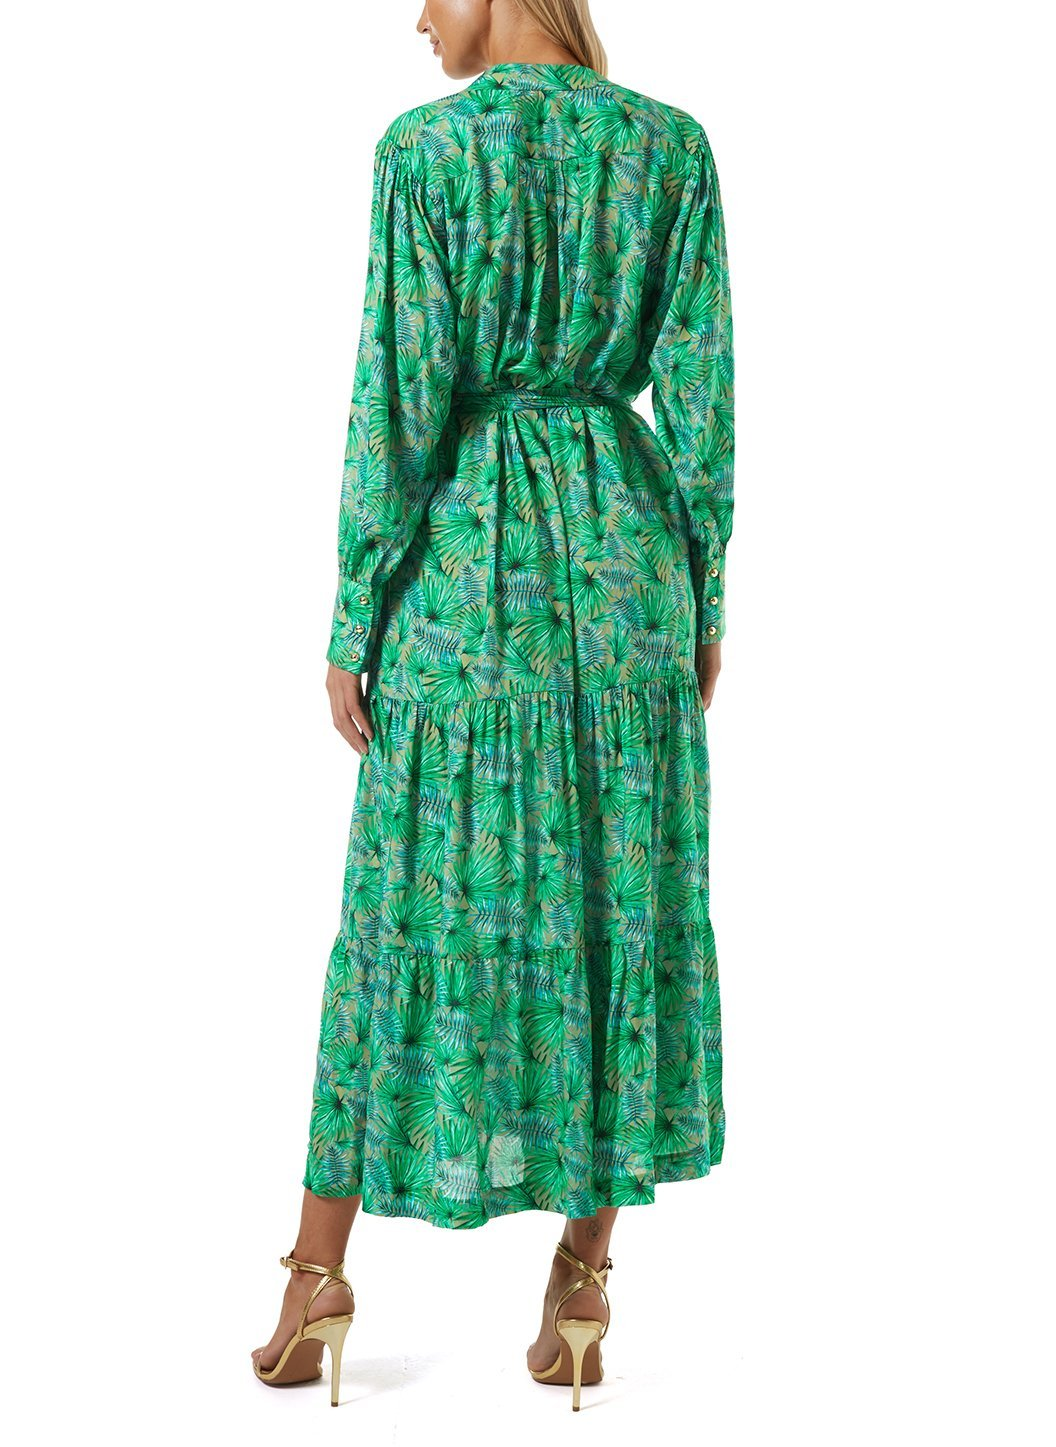 Lorikeet Fern Dress B